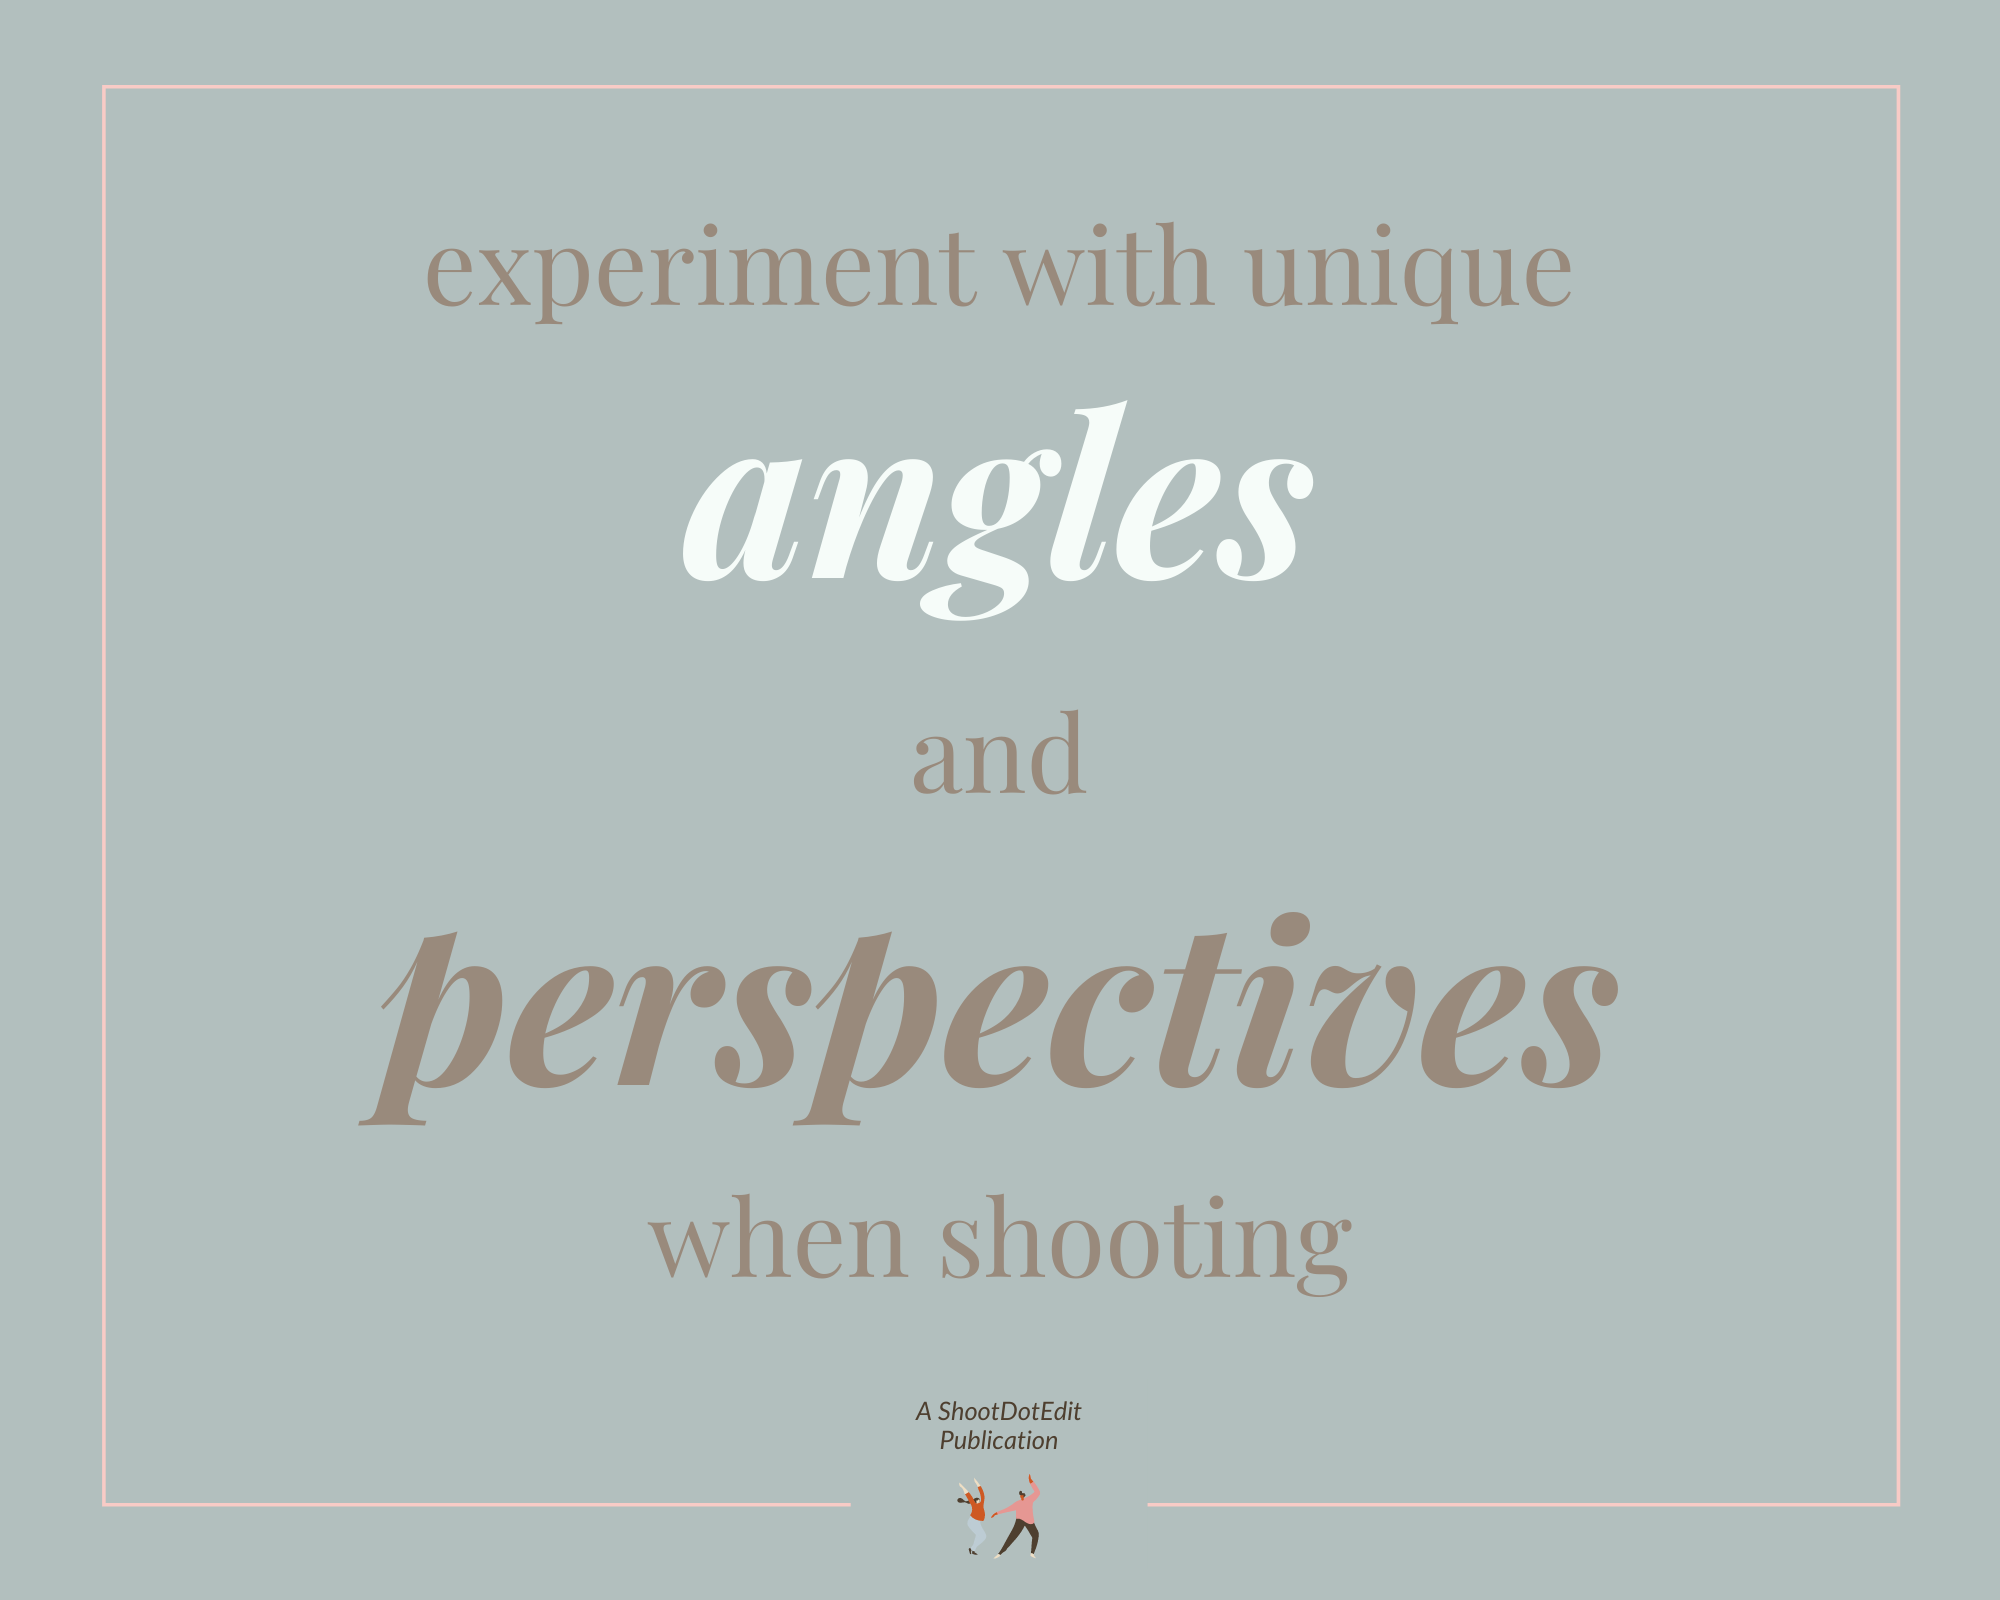 Infographic stating experiment with unique angles and perspectives when shooting